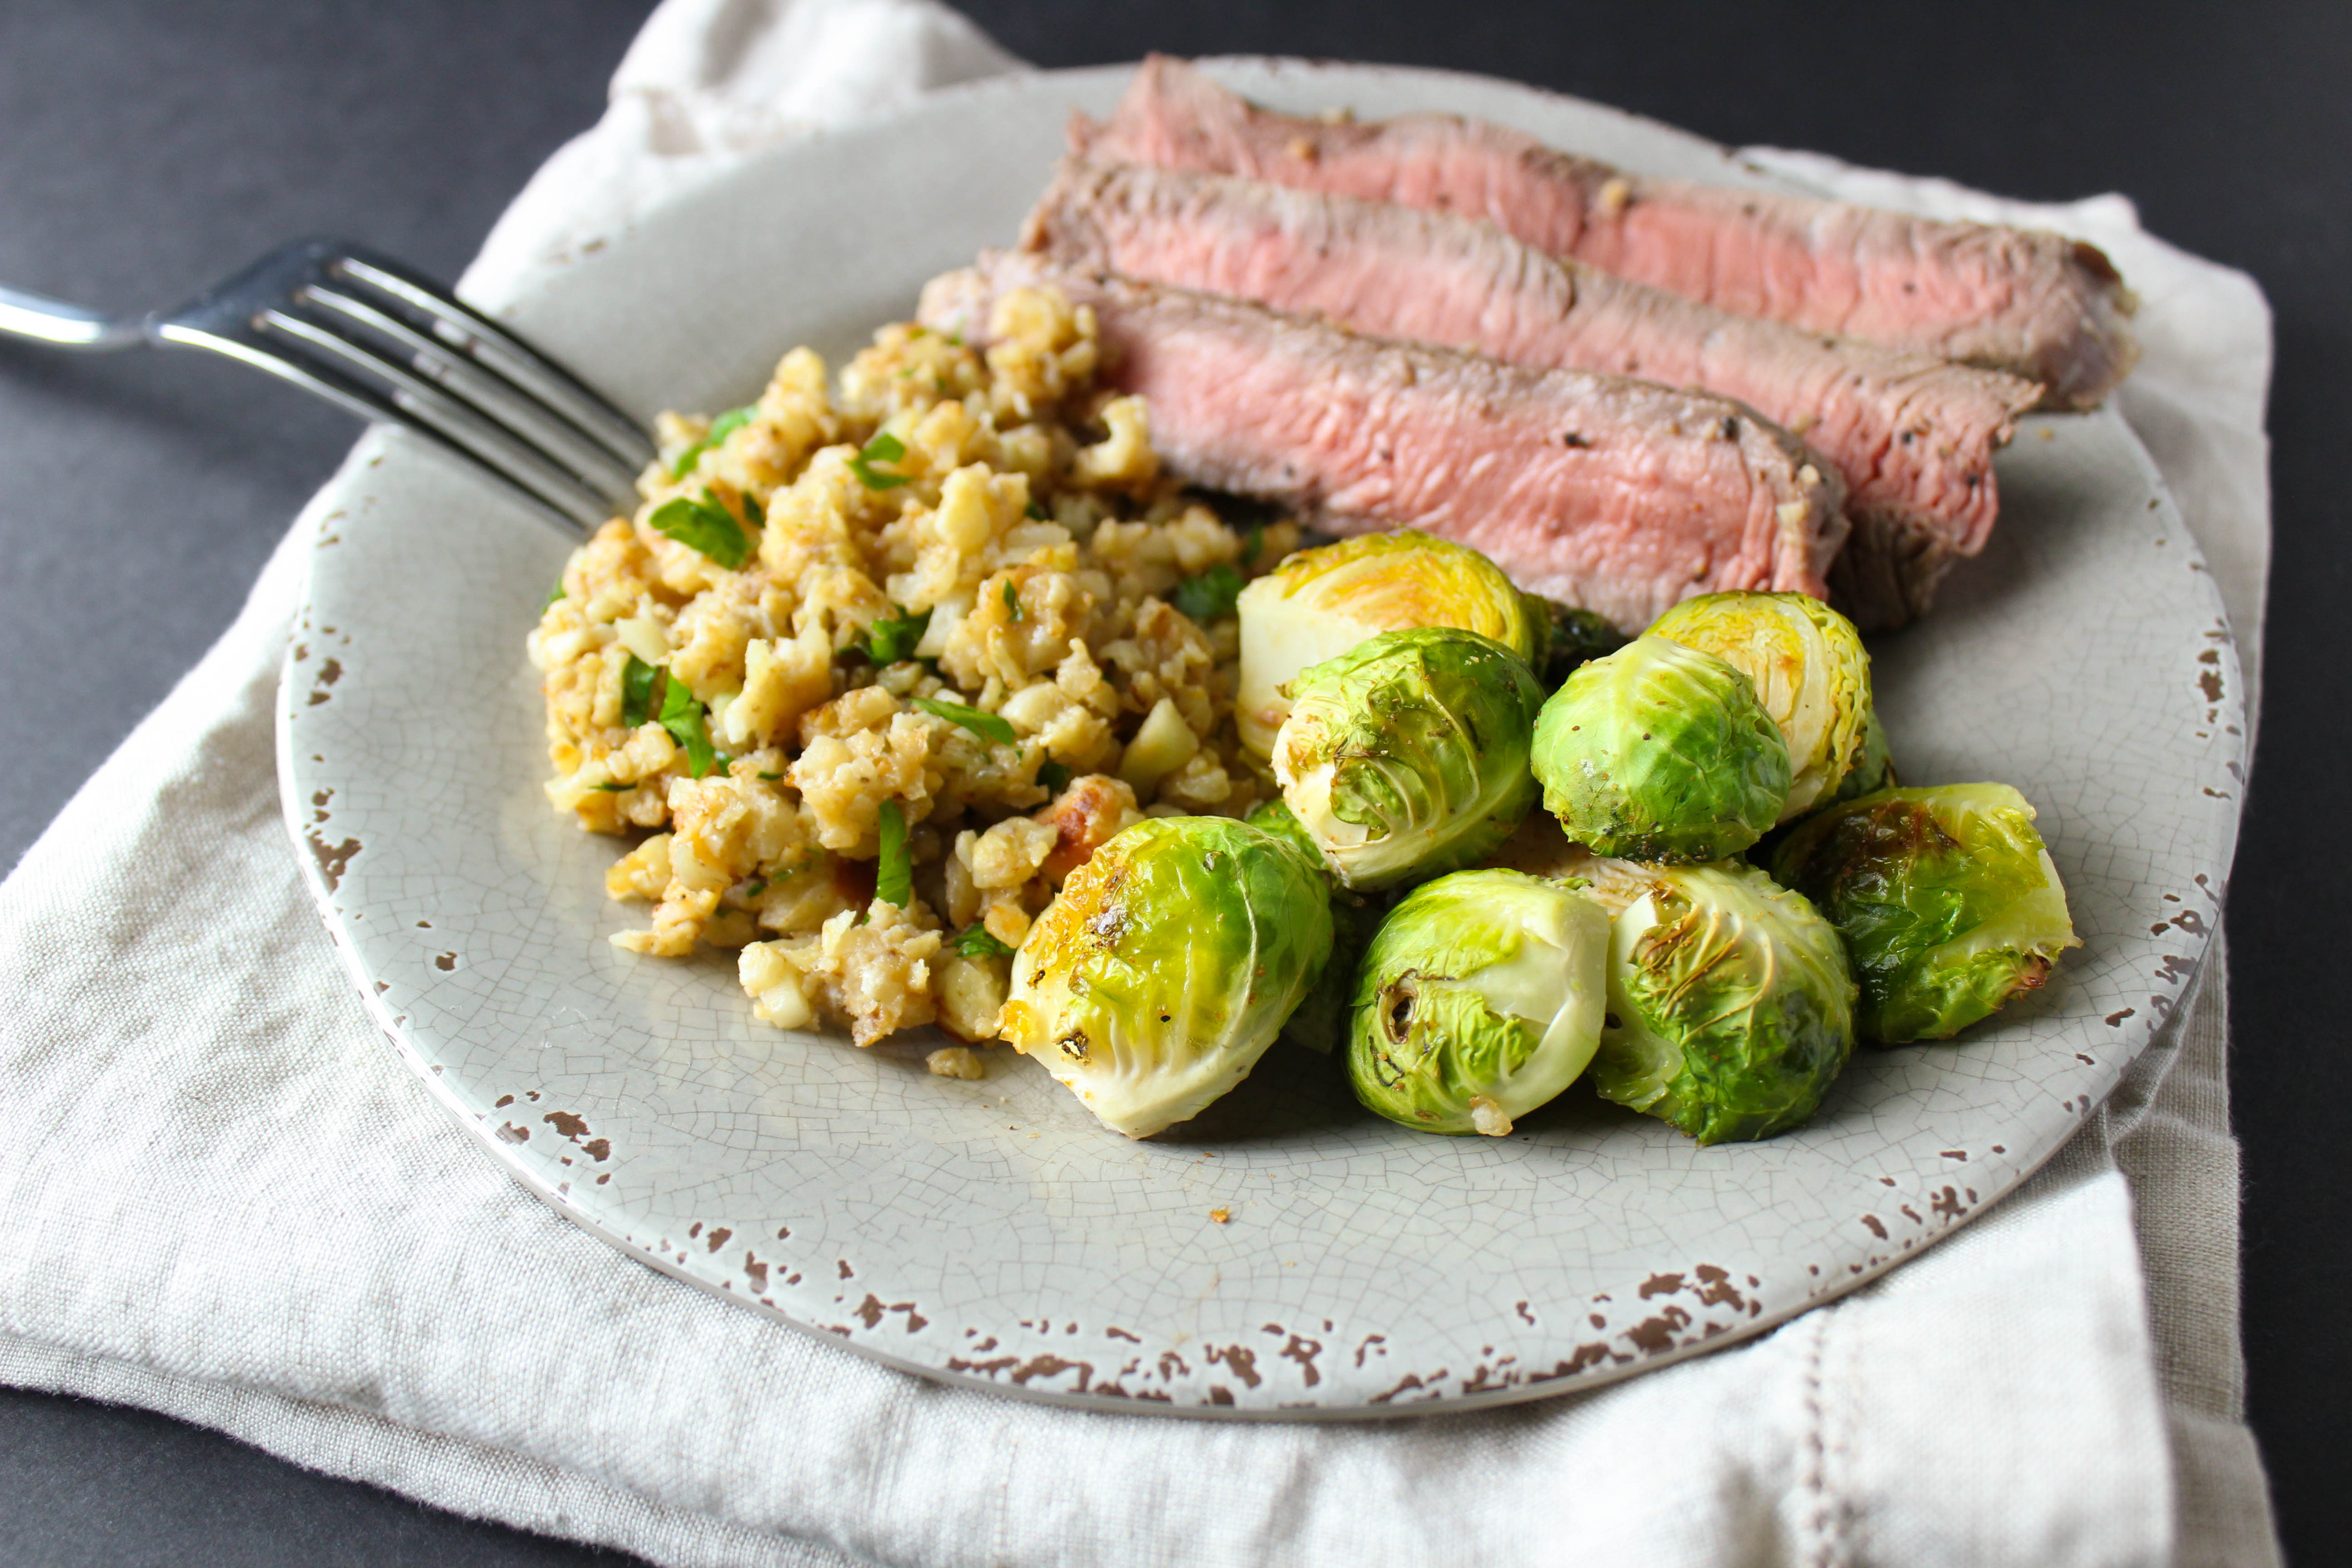 steak with riced cauliflower and brussel sprouts